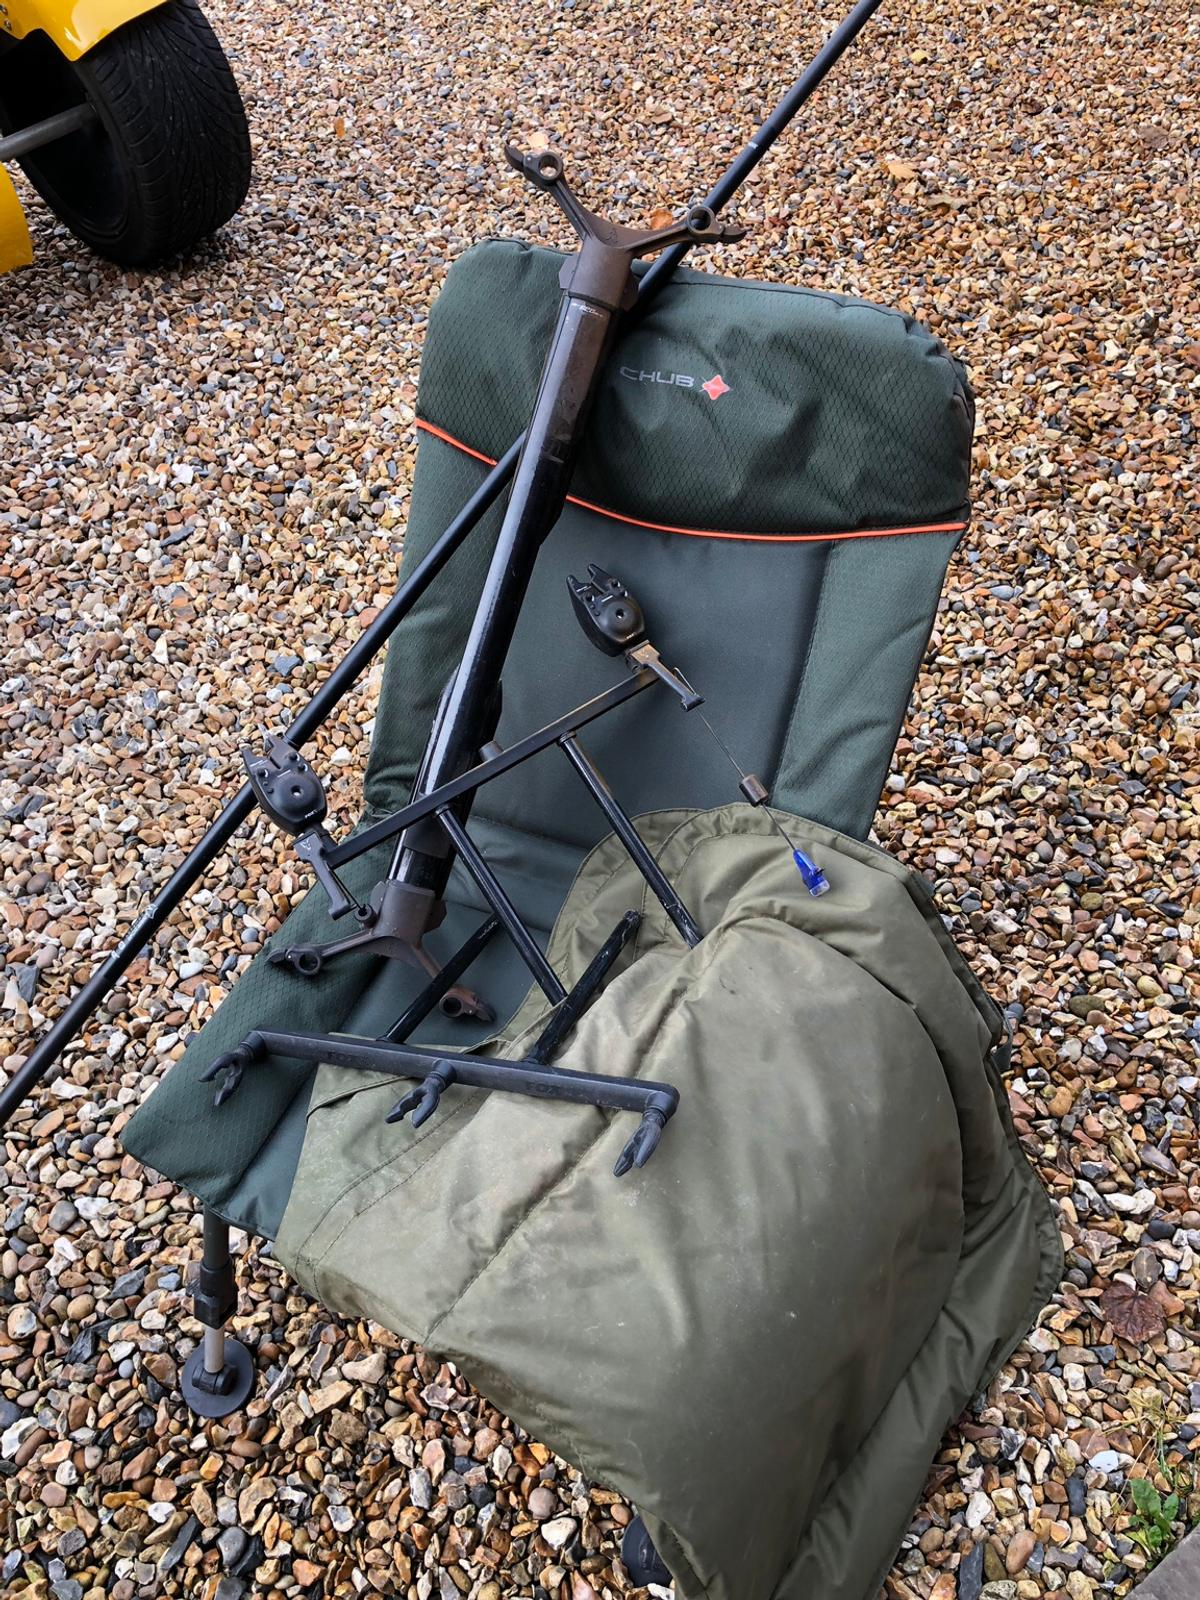 Fishing gear in FY6 Wyre for £120 00 for sale - Shpock